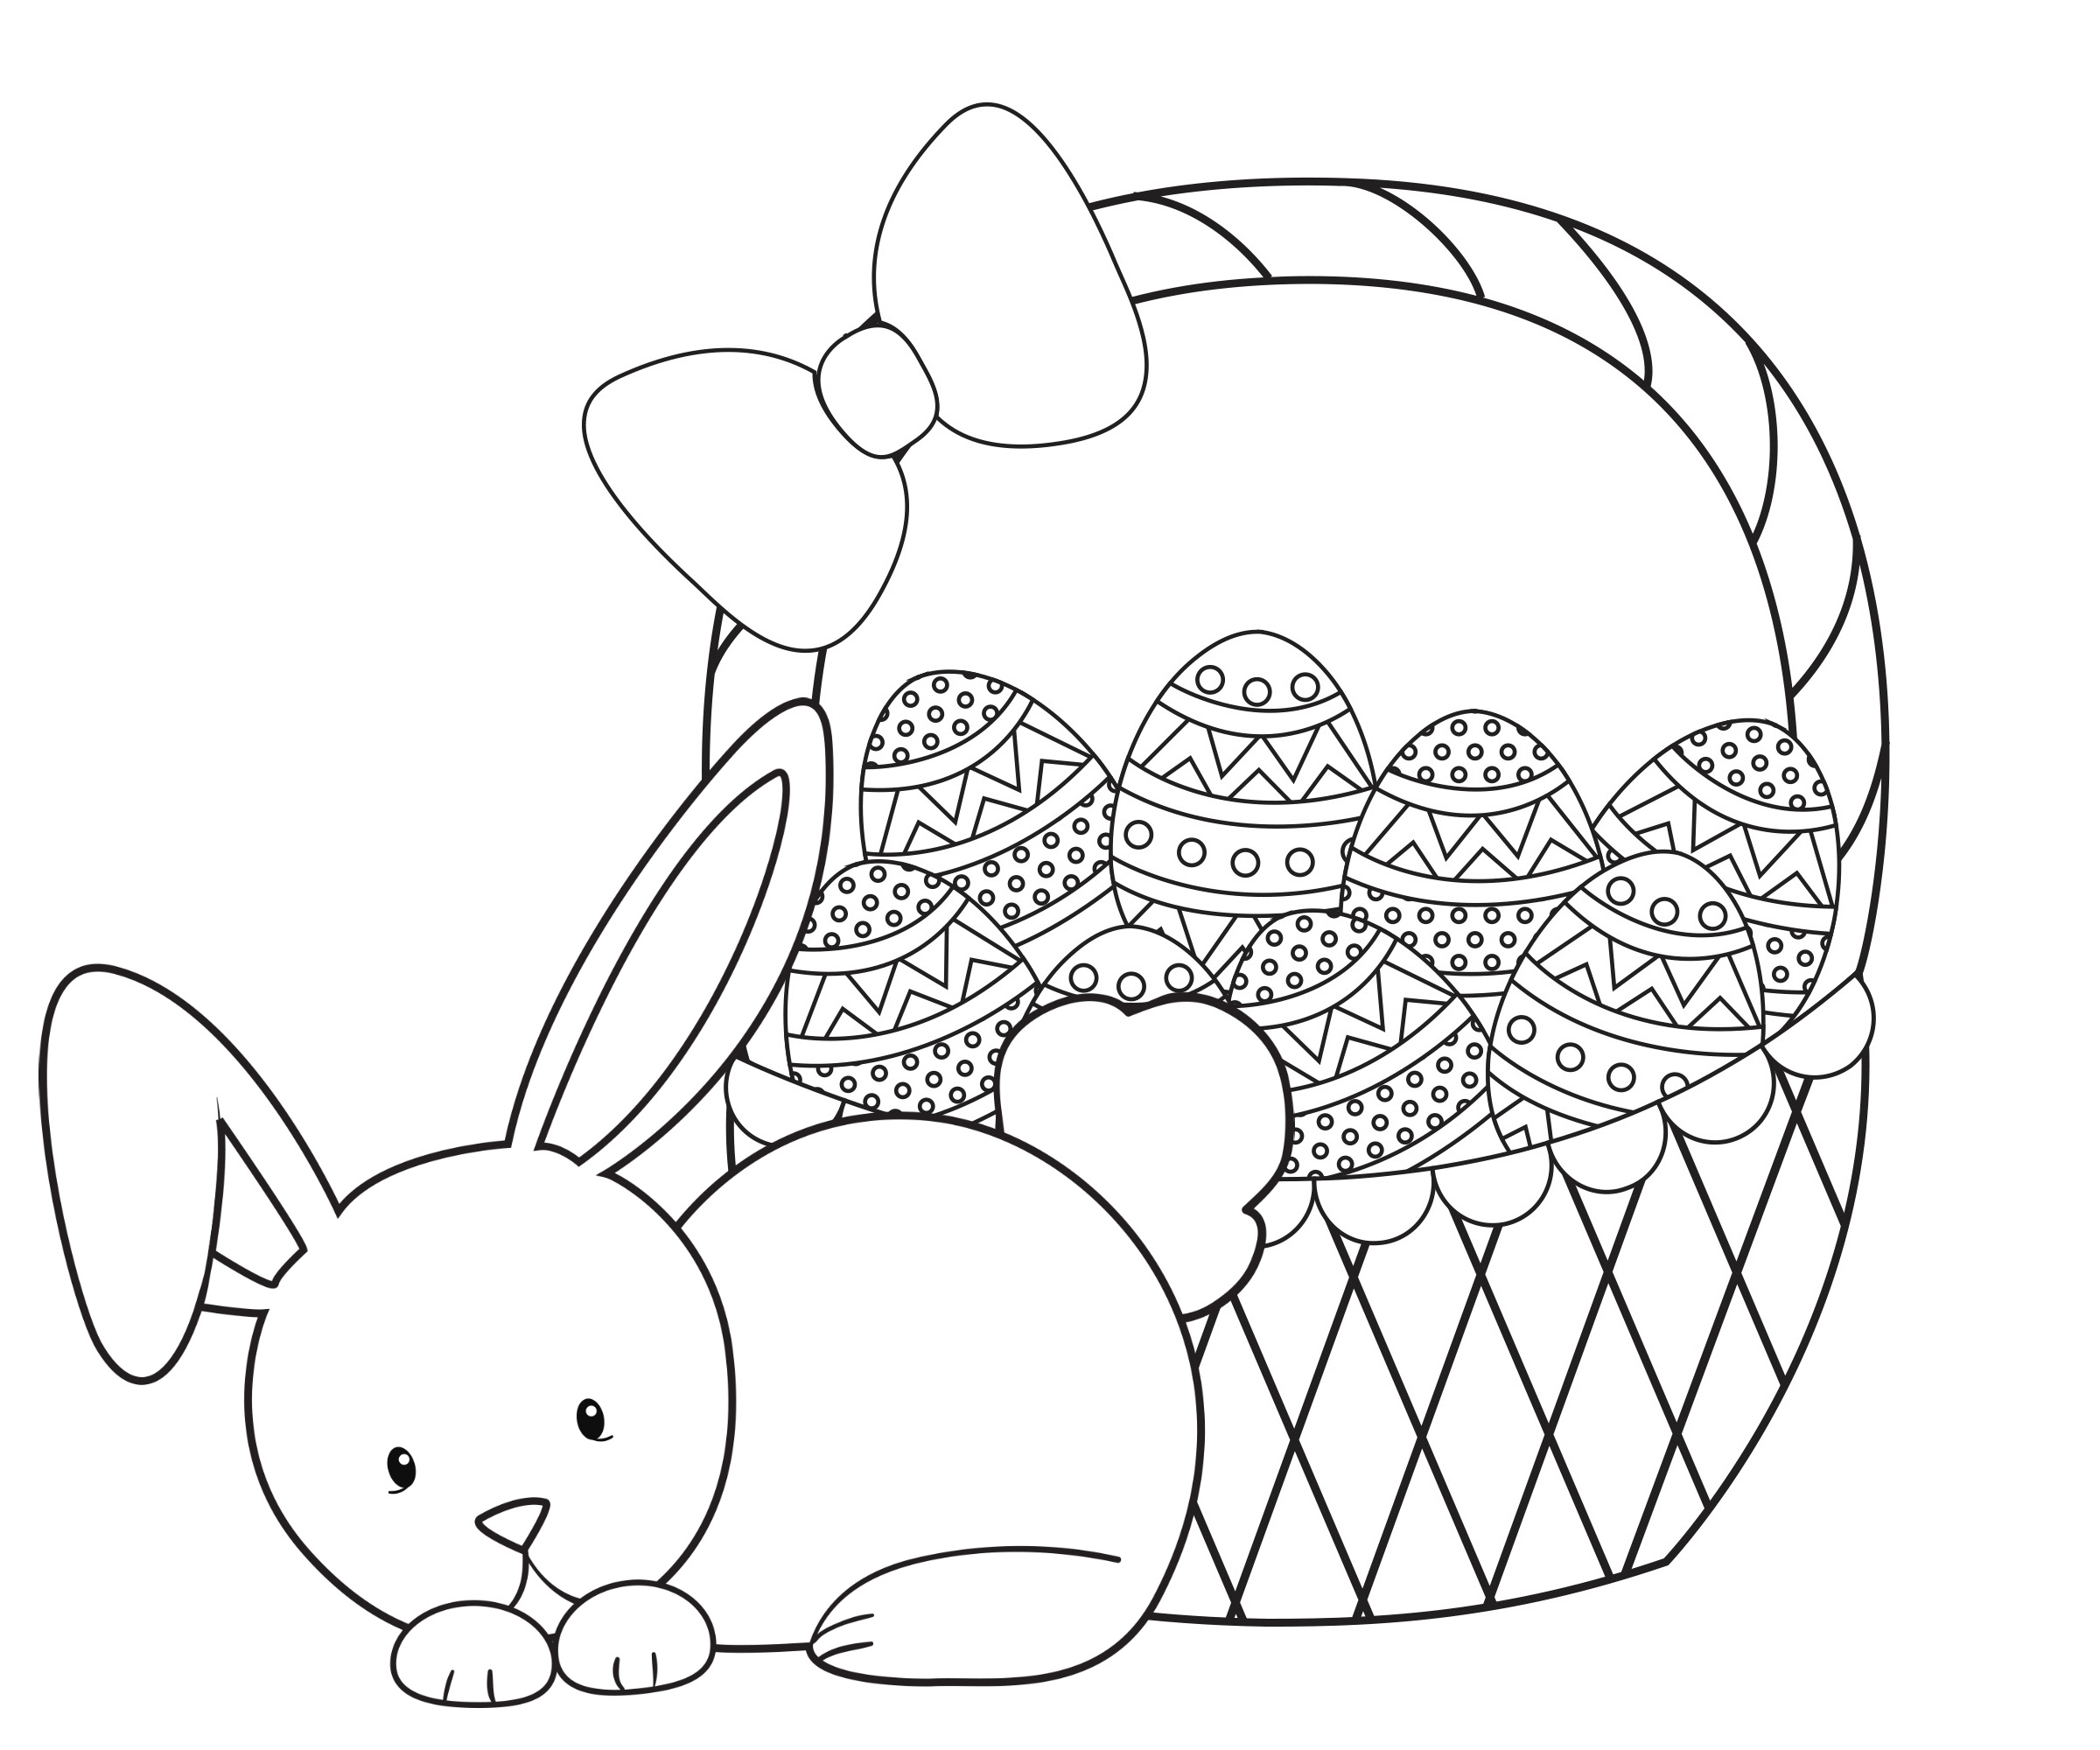 Easter Coloring Pages For Kids - Crazy Little Projects - Free Printable Easter Coloring Pages